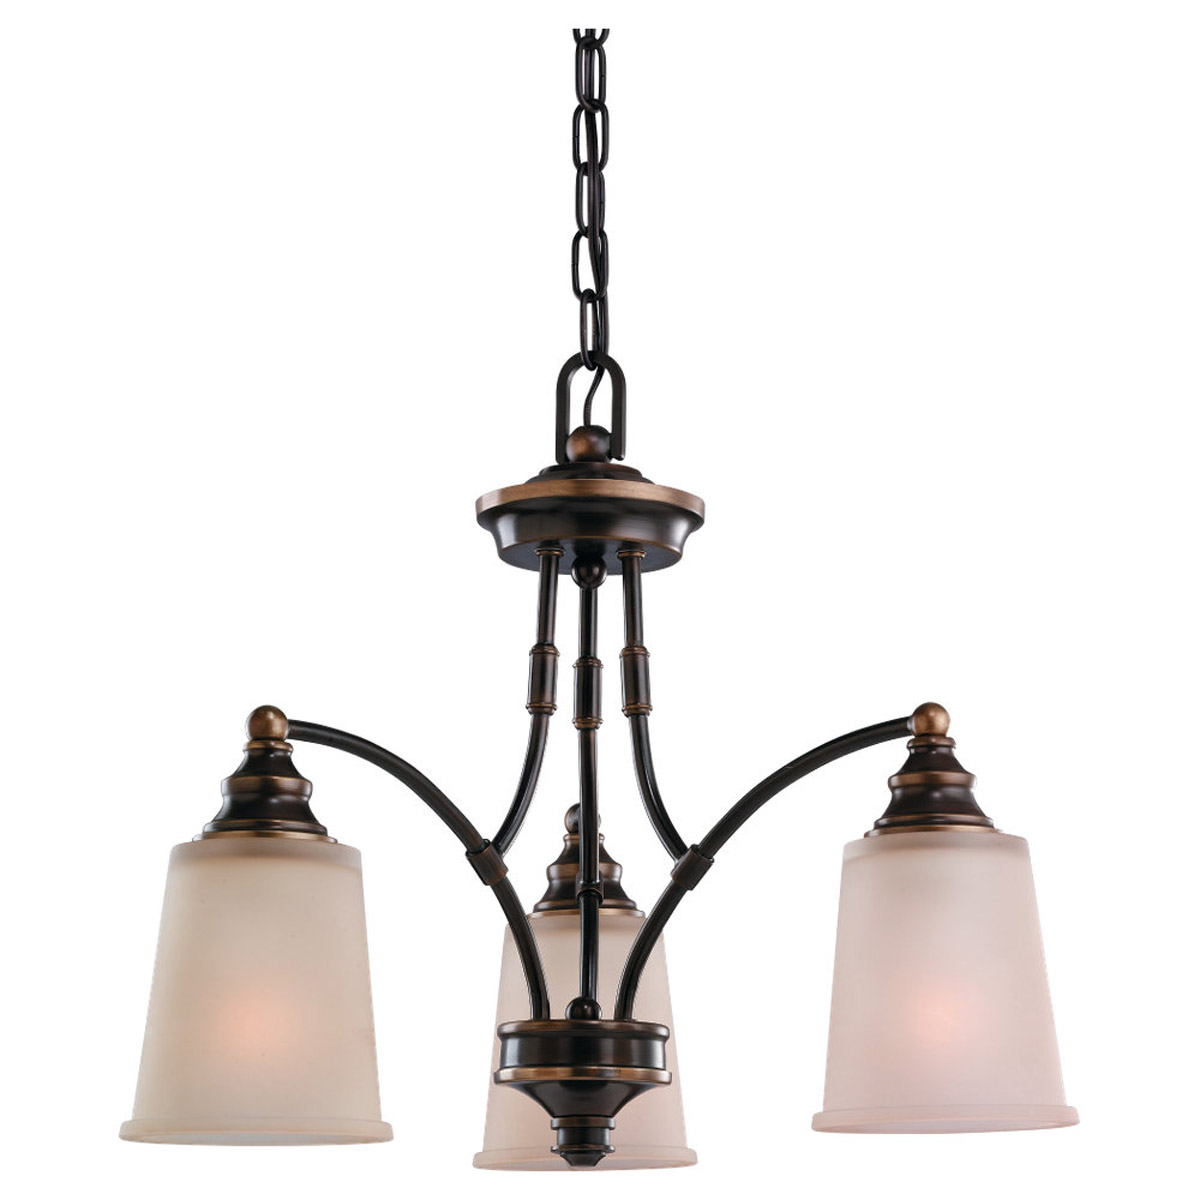 Sea Gull Lighting Warwick 3 Light Chandelier in Vintage Bronze 31330-825